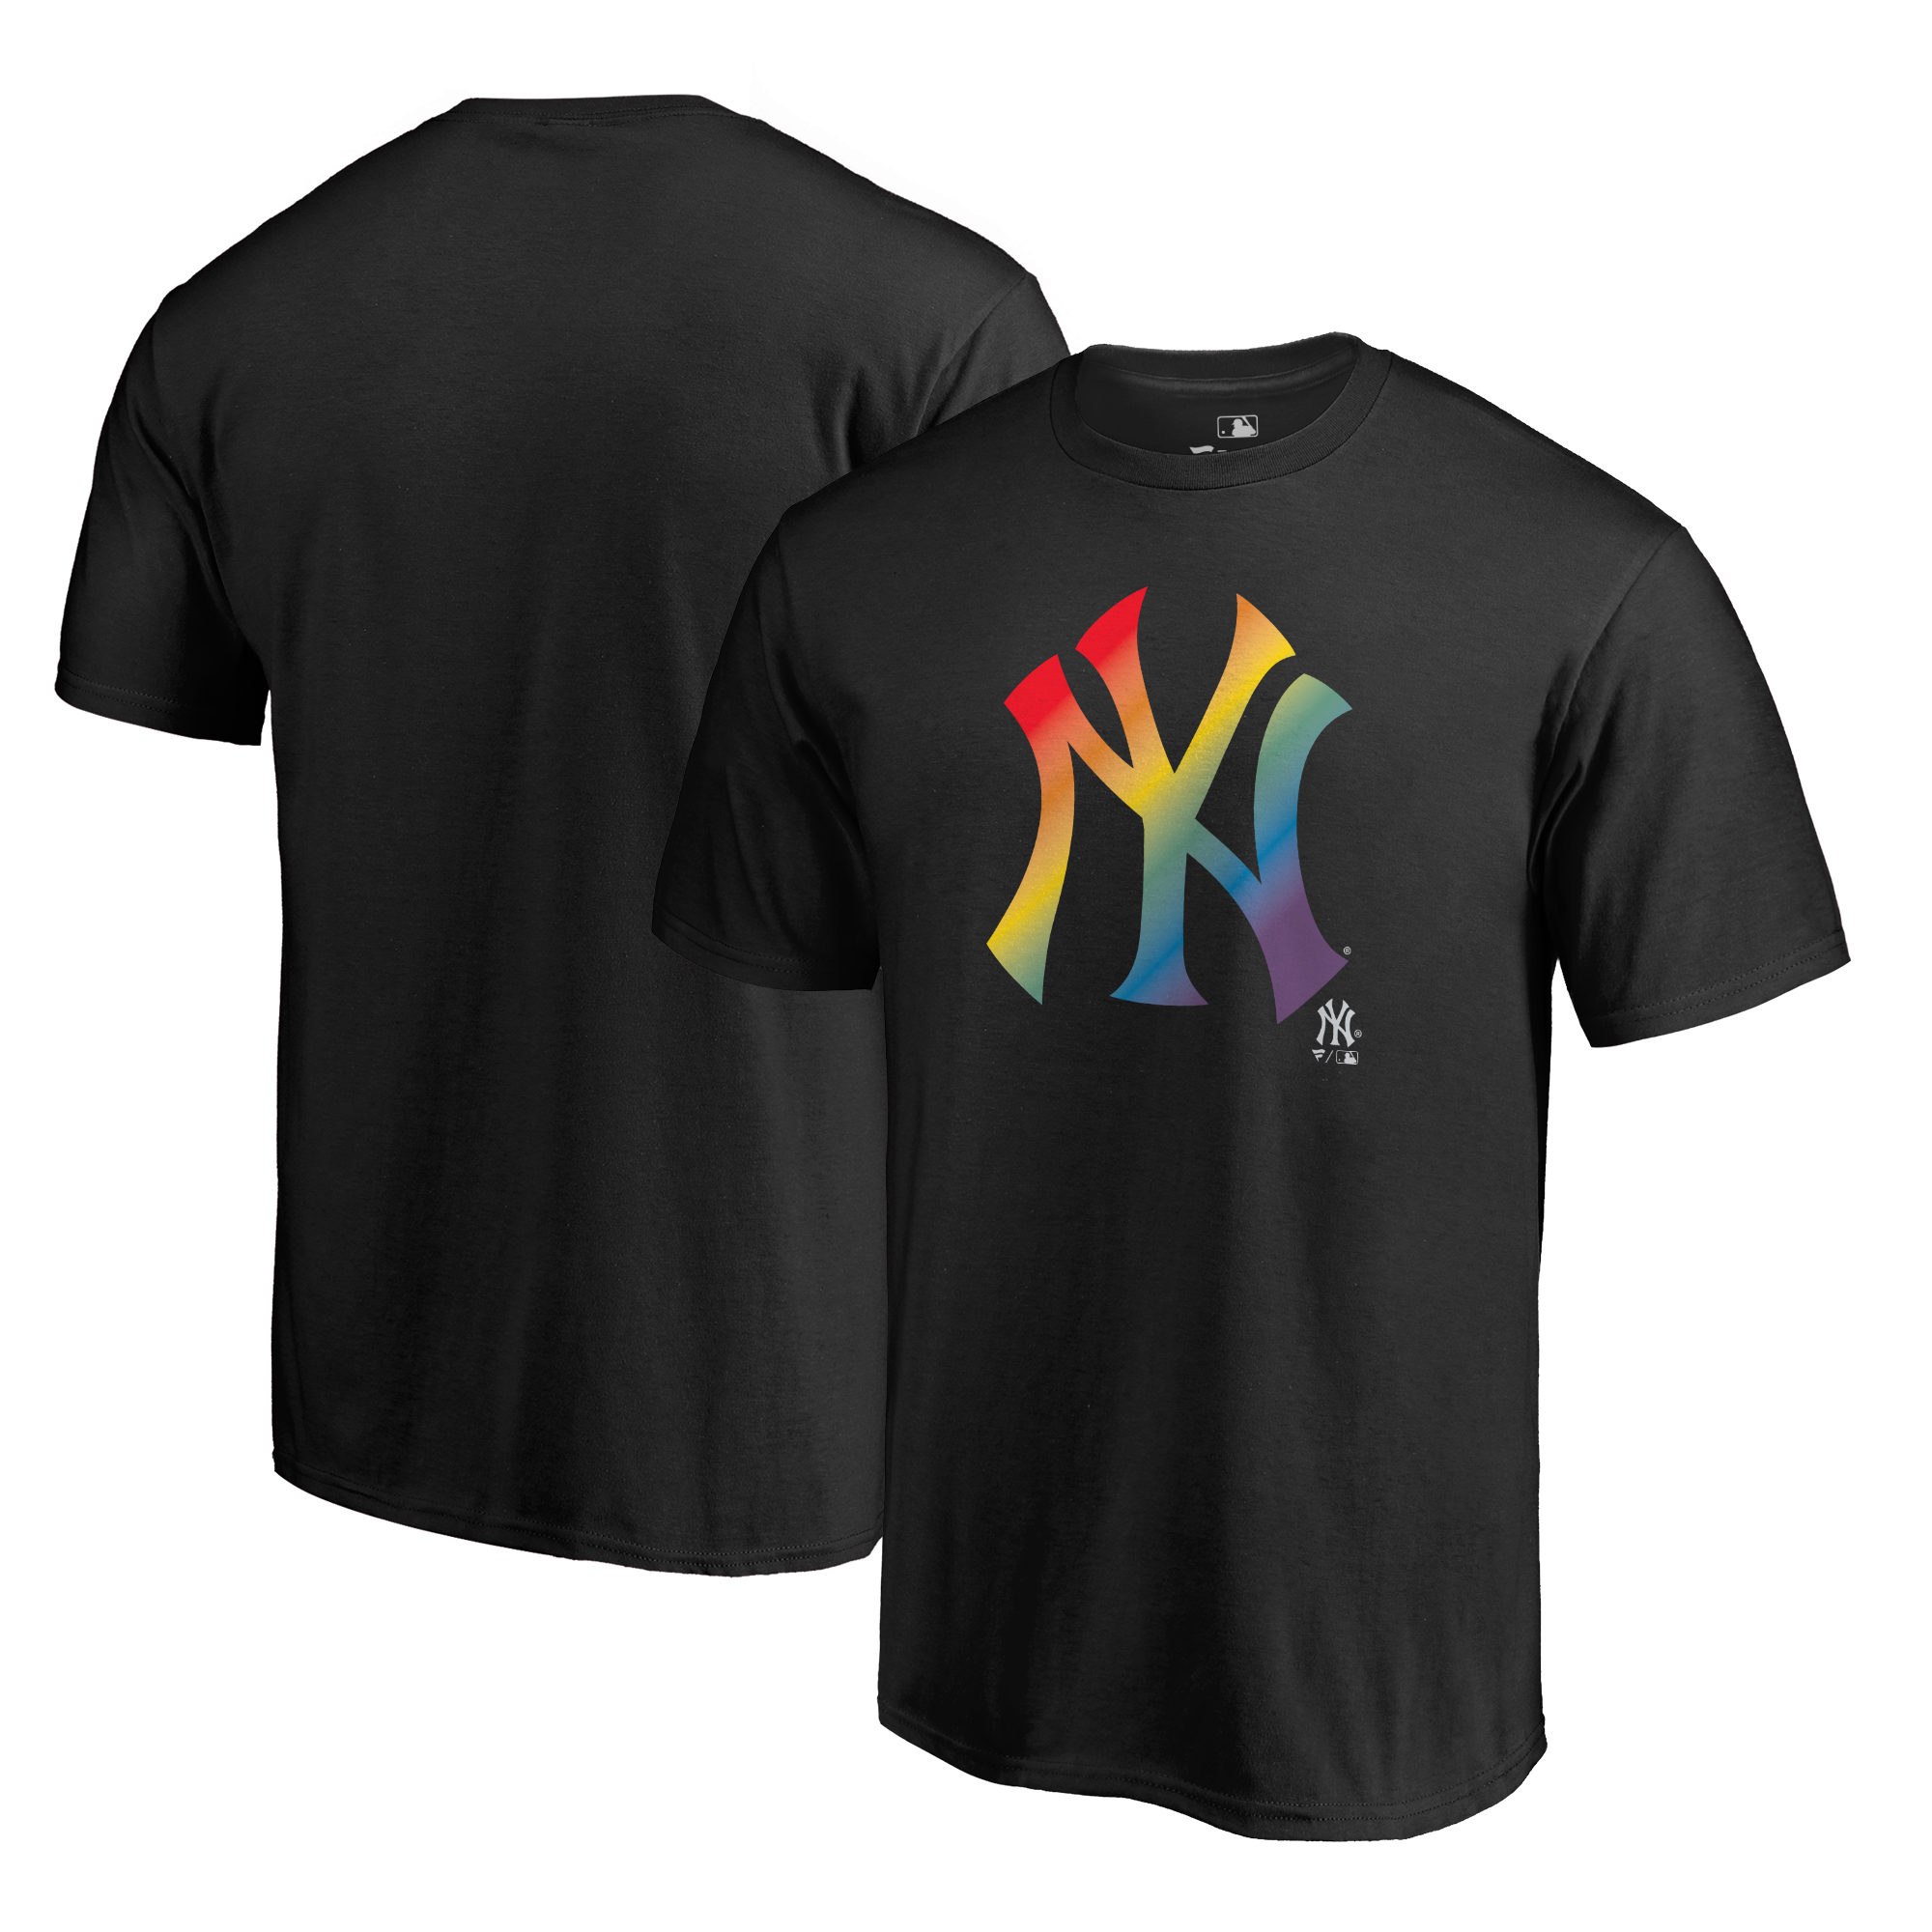 New York Yankees Fanatics Branded Pride T-Shirt - Black